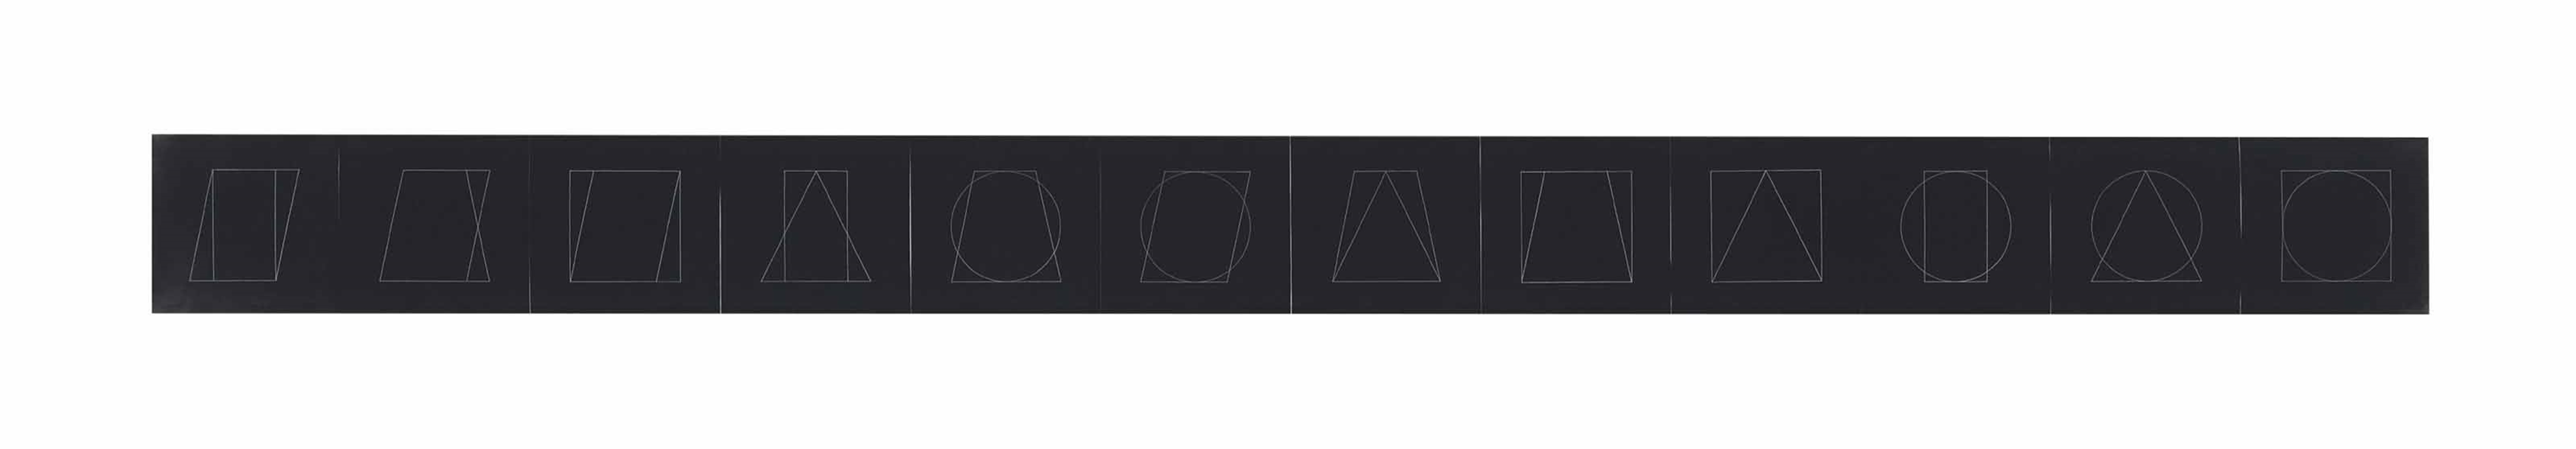 Sol LeWitt-All Double Combinations (Superimposed) of Geometric Figures (Circle, Square, Triangle, Rectangle, Trapezoid, Parallelogram): twelve plates-1977